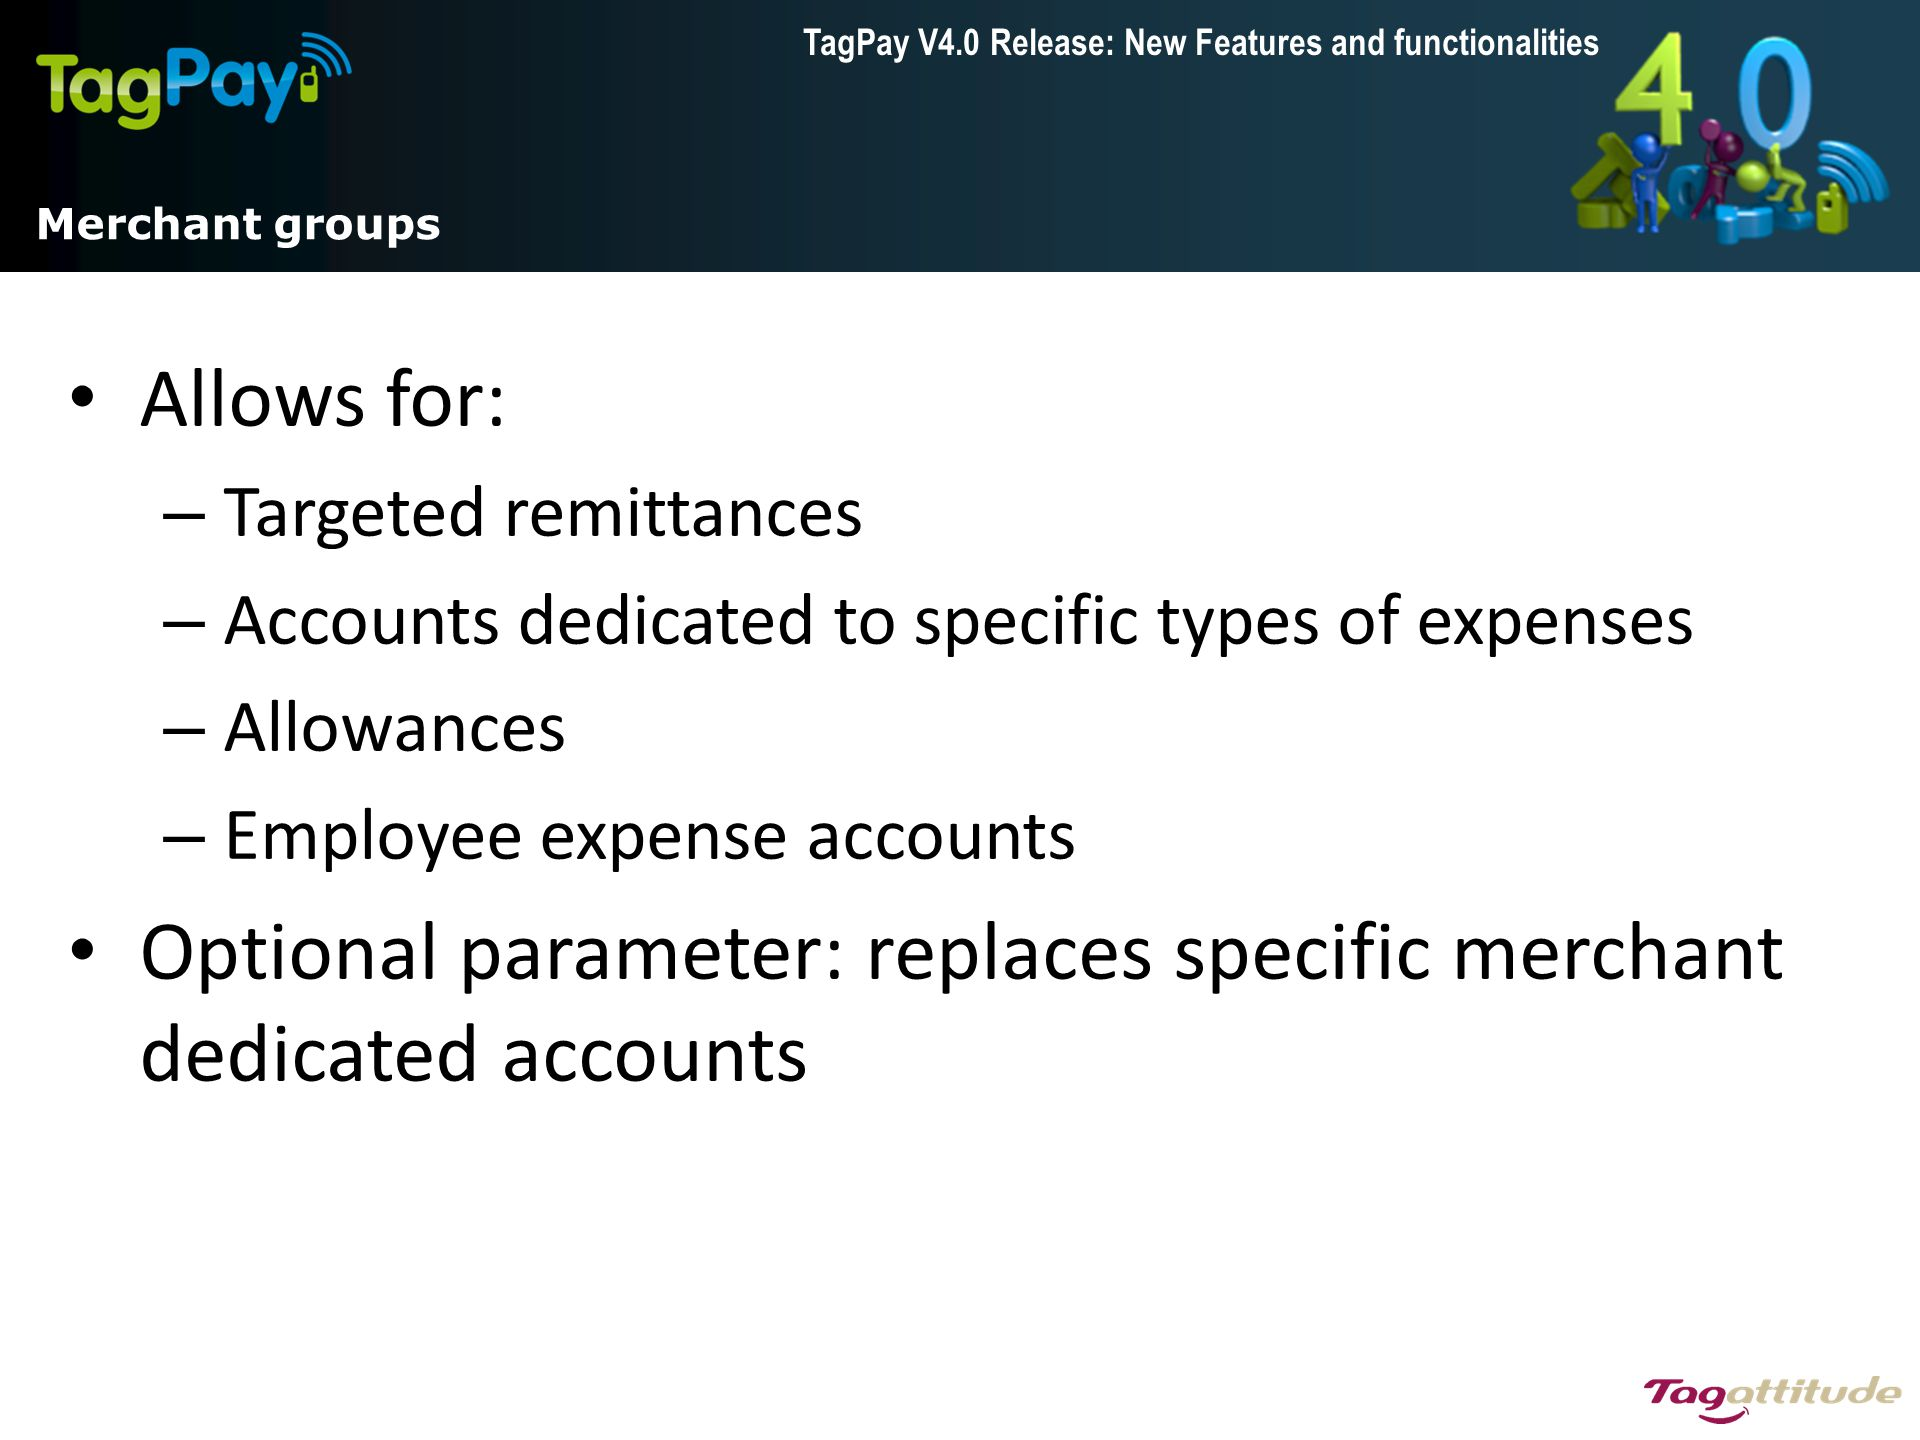 Optional parameter: replaces specific merchant dedicated accounts